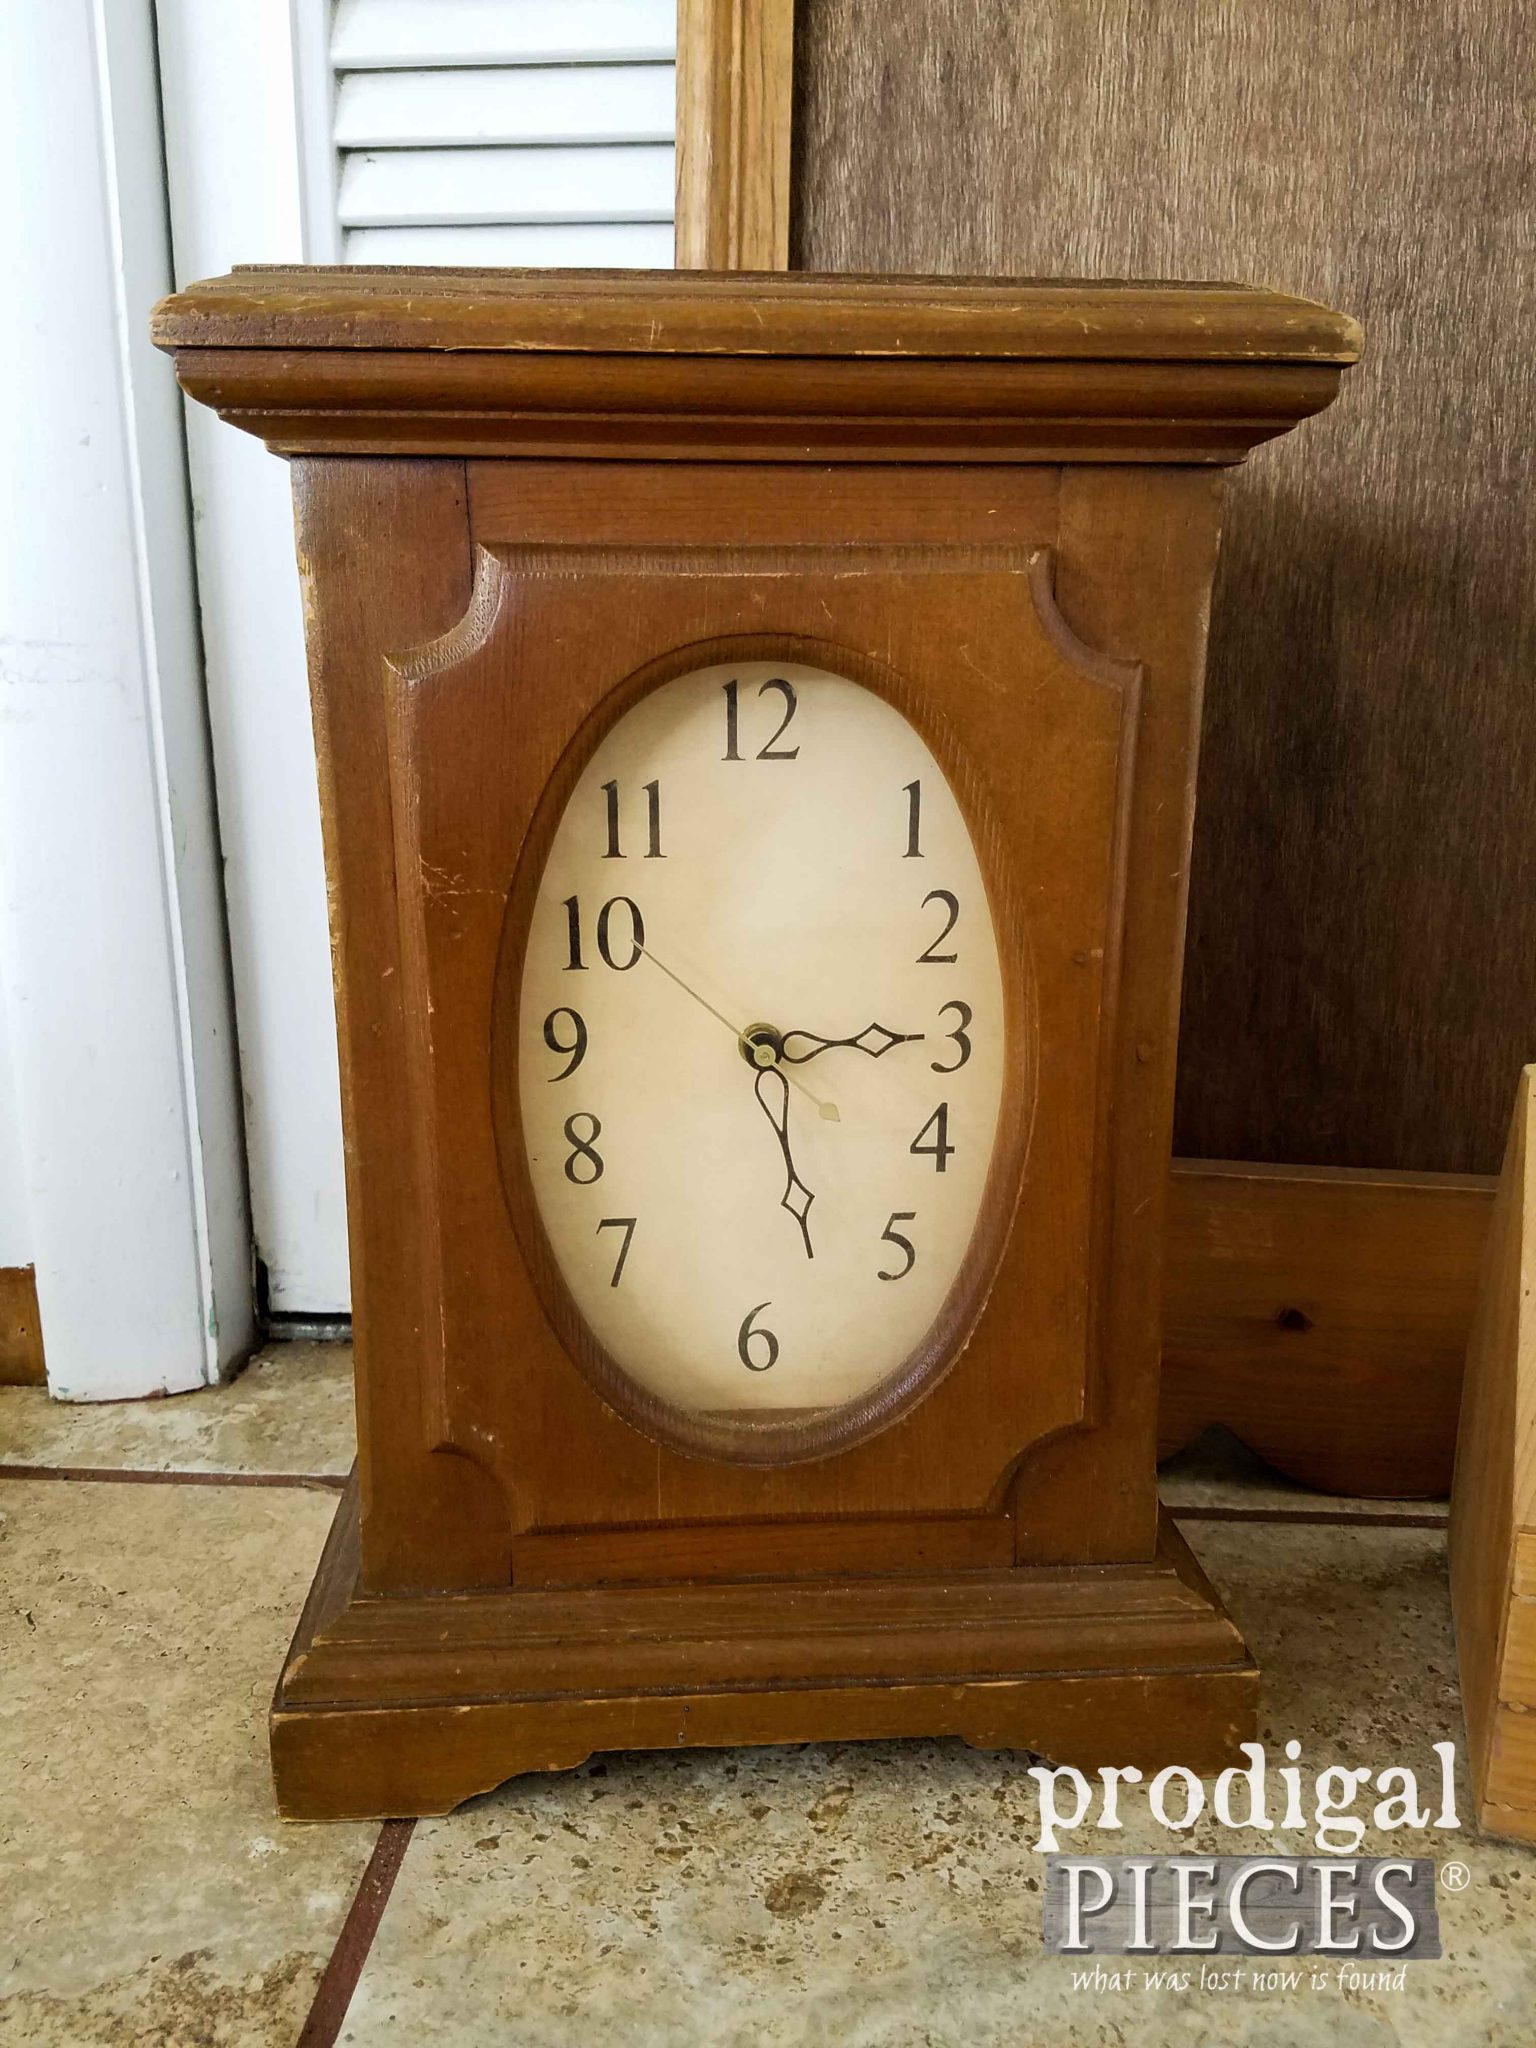 Thrifted Mantel Clock Before Makeover by Prodigal Pieces | prodigalpieces.com